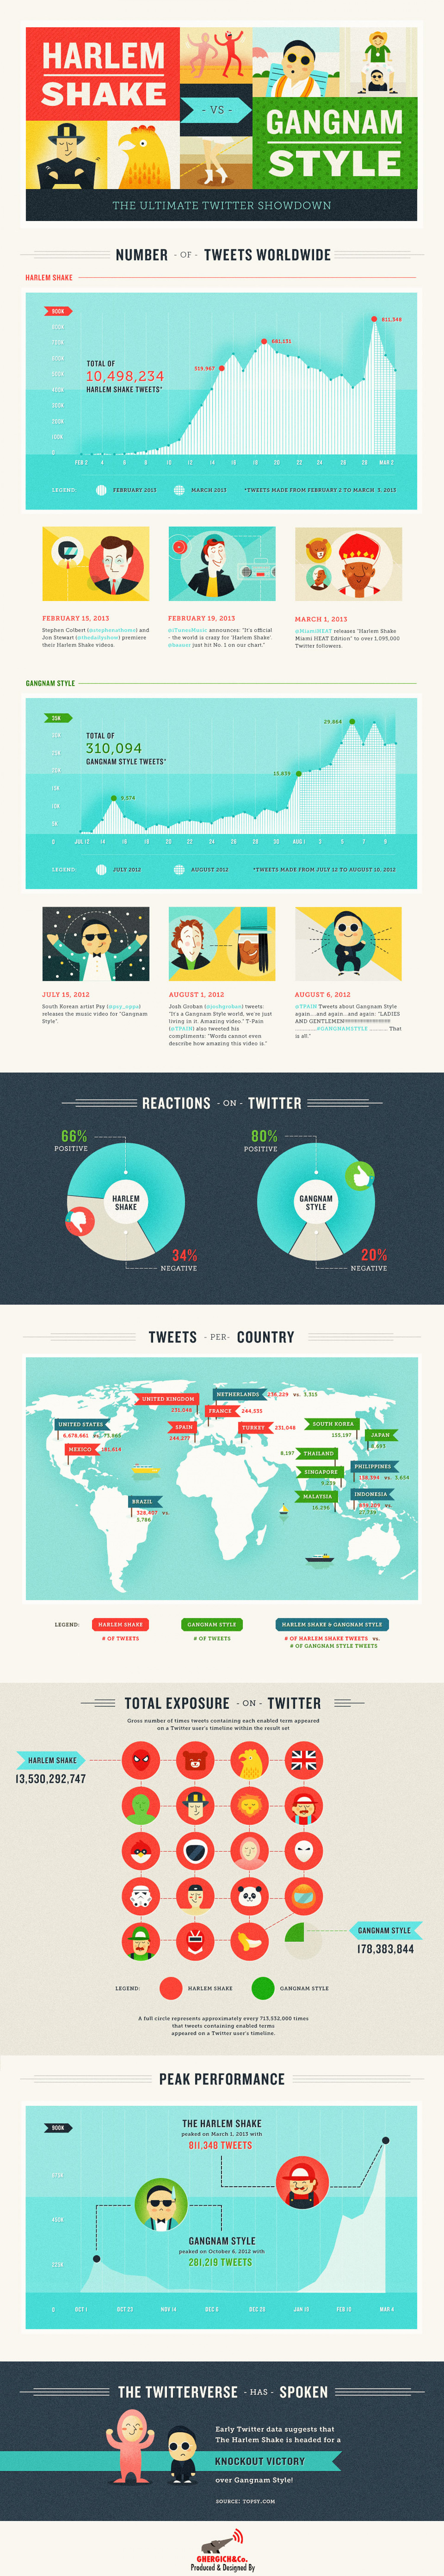 Harlem Shake vs Gangnam Style - Ultimate Twitter Showdown Infographic